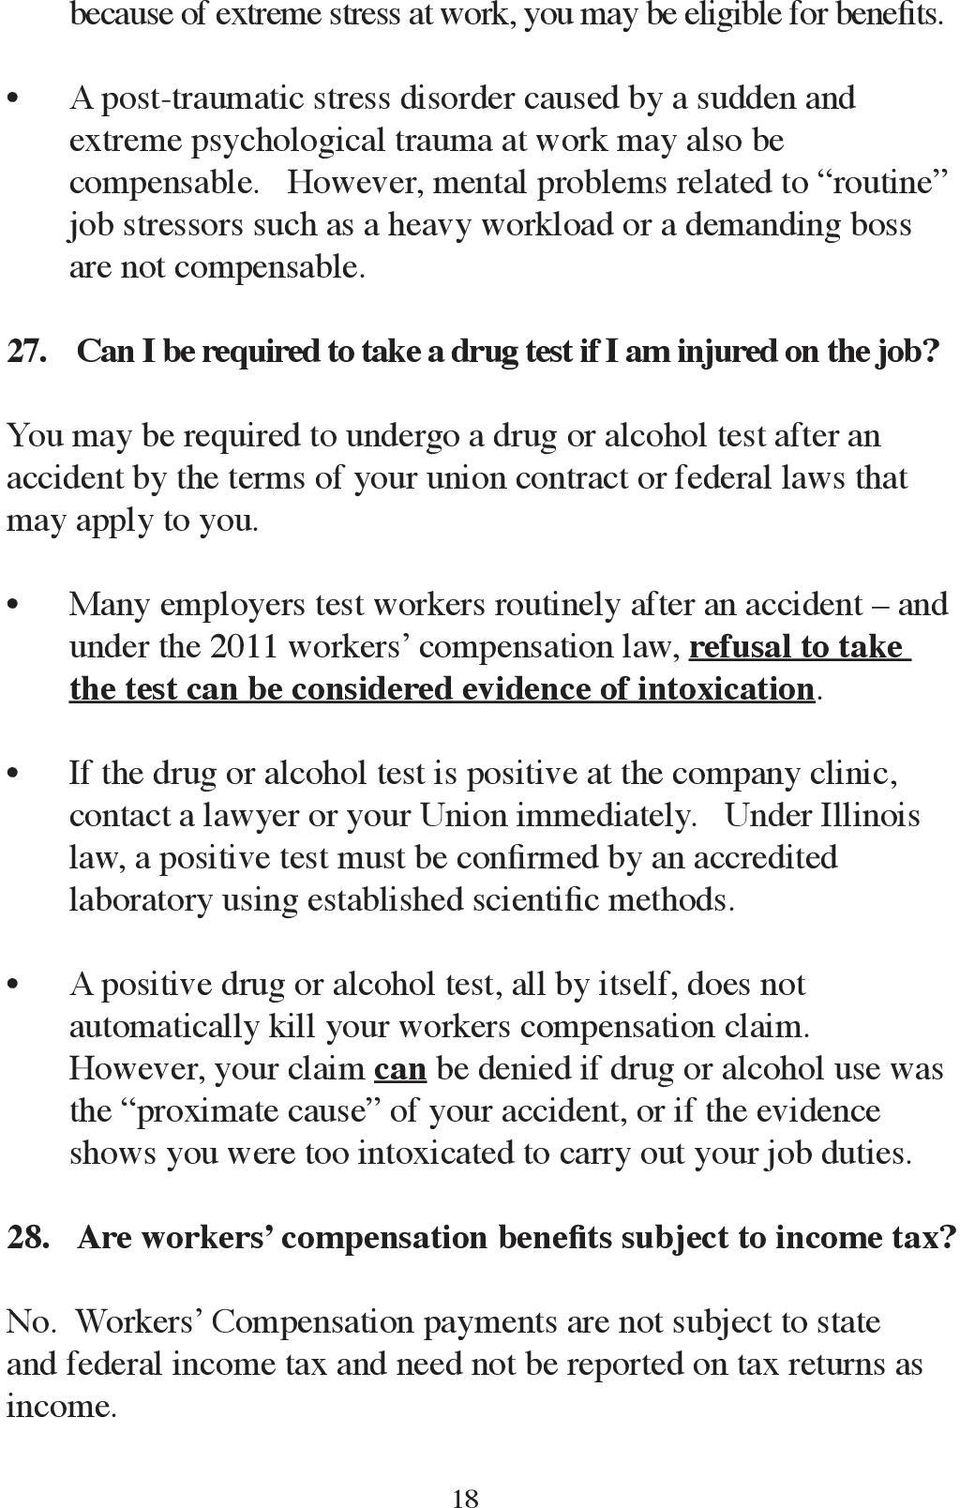 You may be required to undergo a drug or alcohol test after an accident by the terms of your union contract or federal laws that may apply to you.